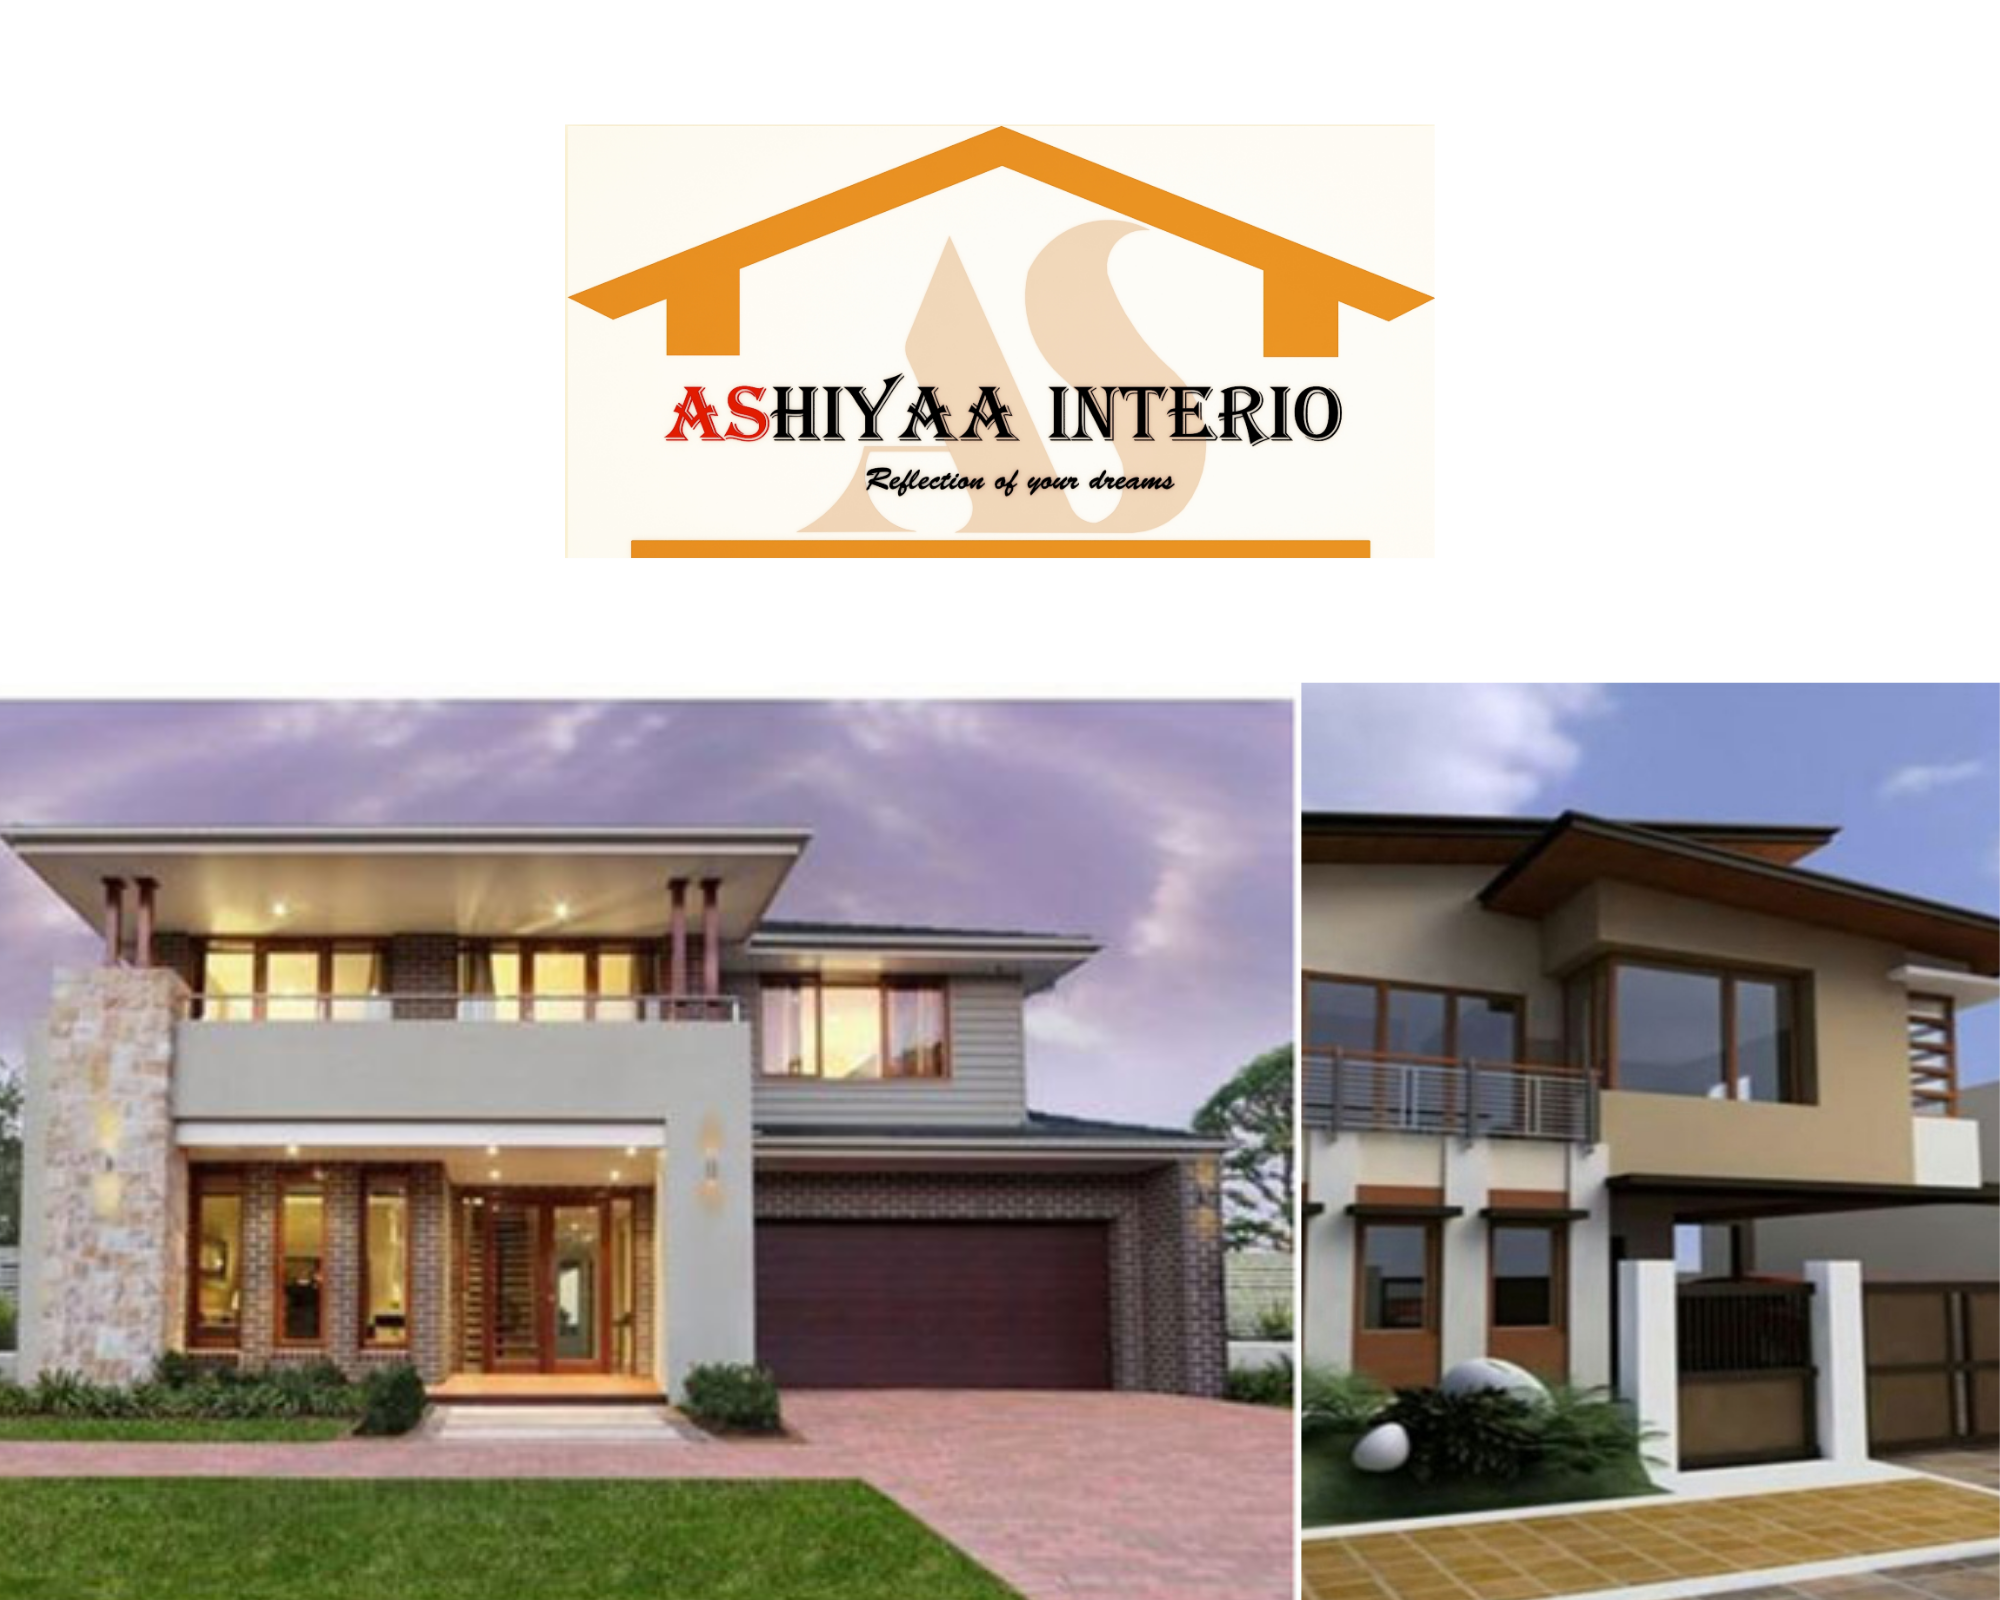 House Front Design - Kolkata